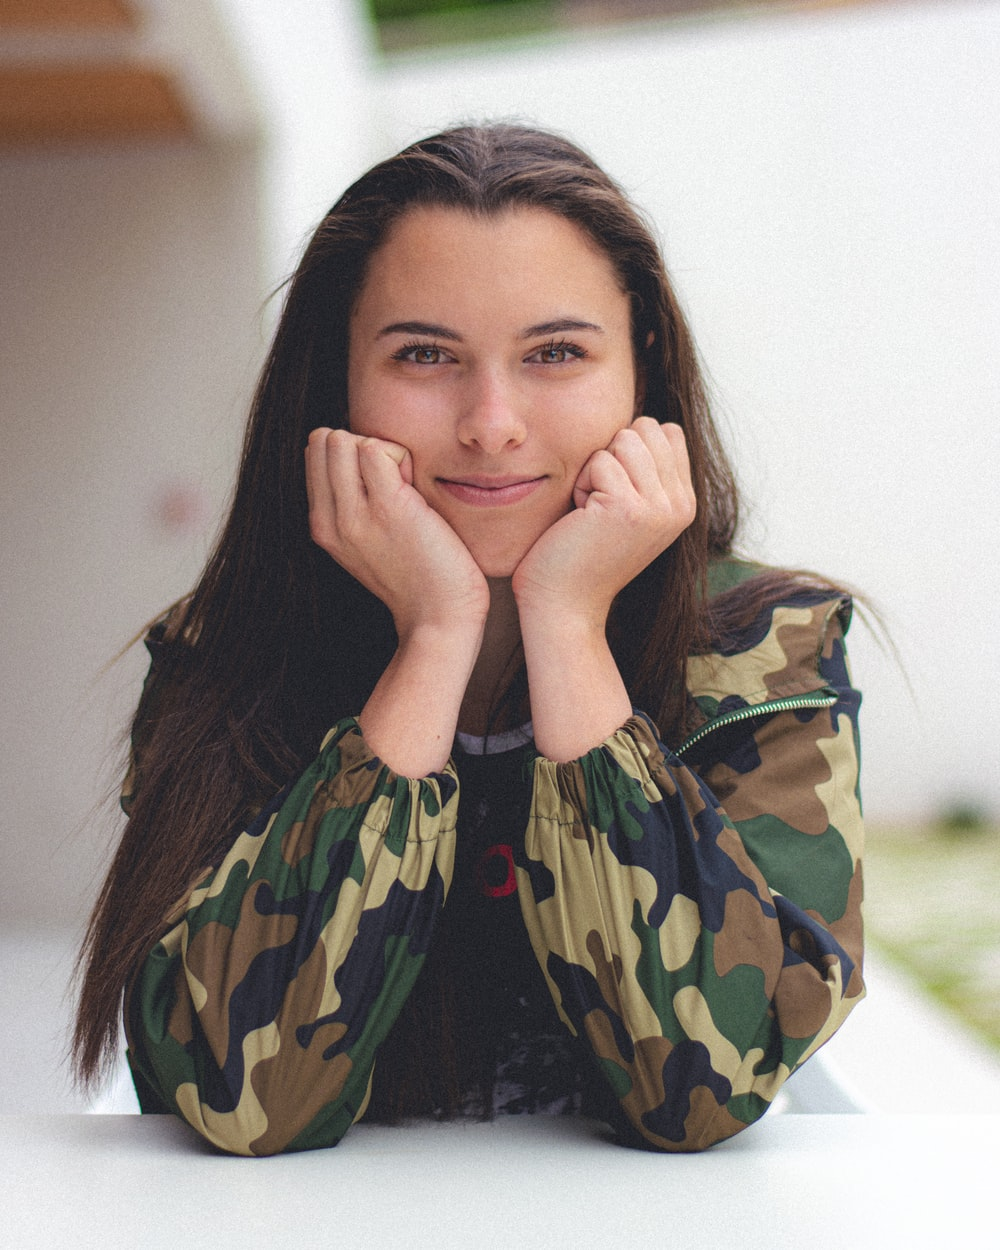 woman in green and black camouflage jacket